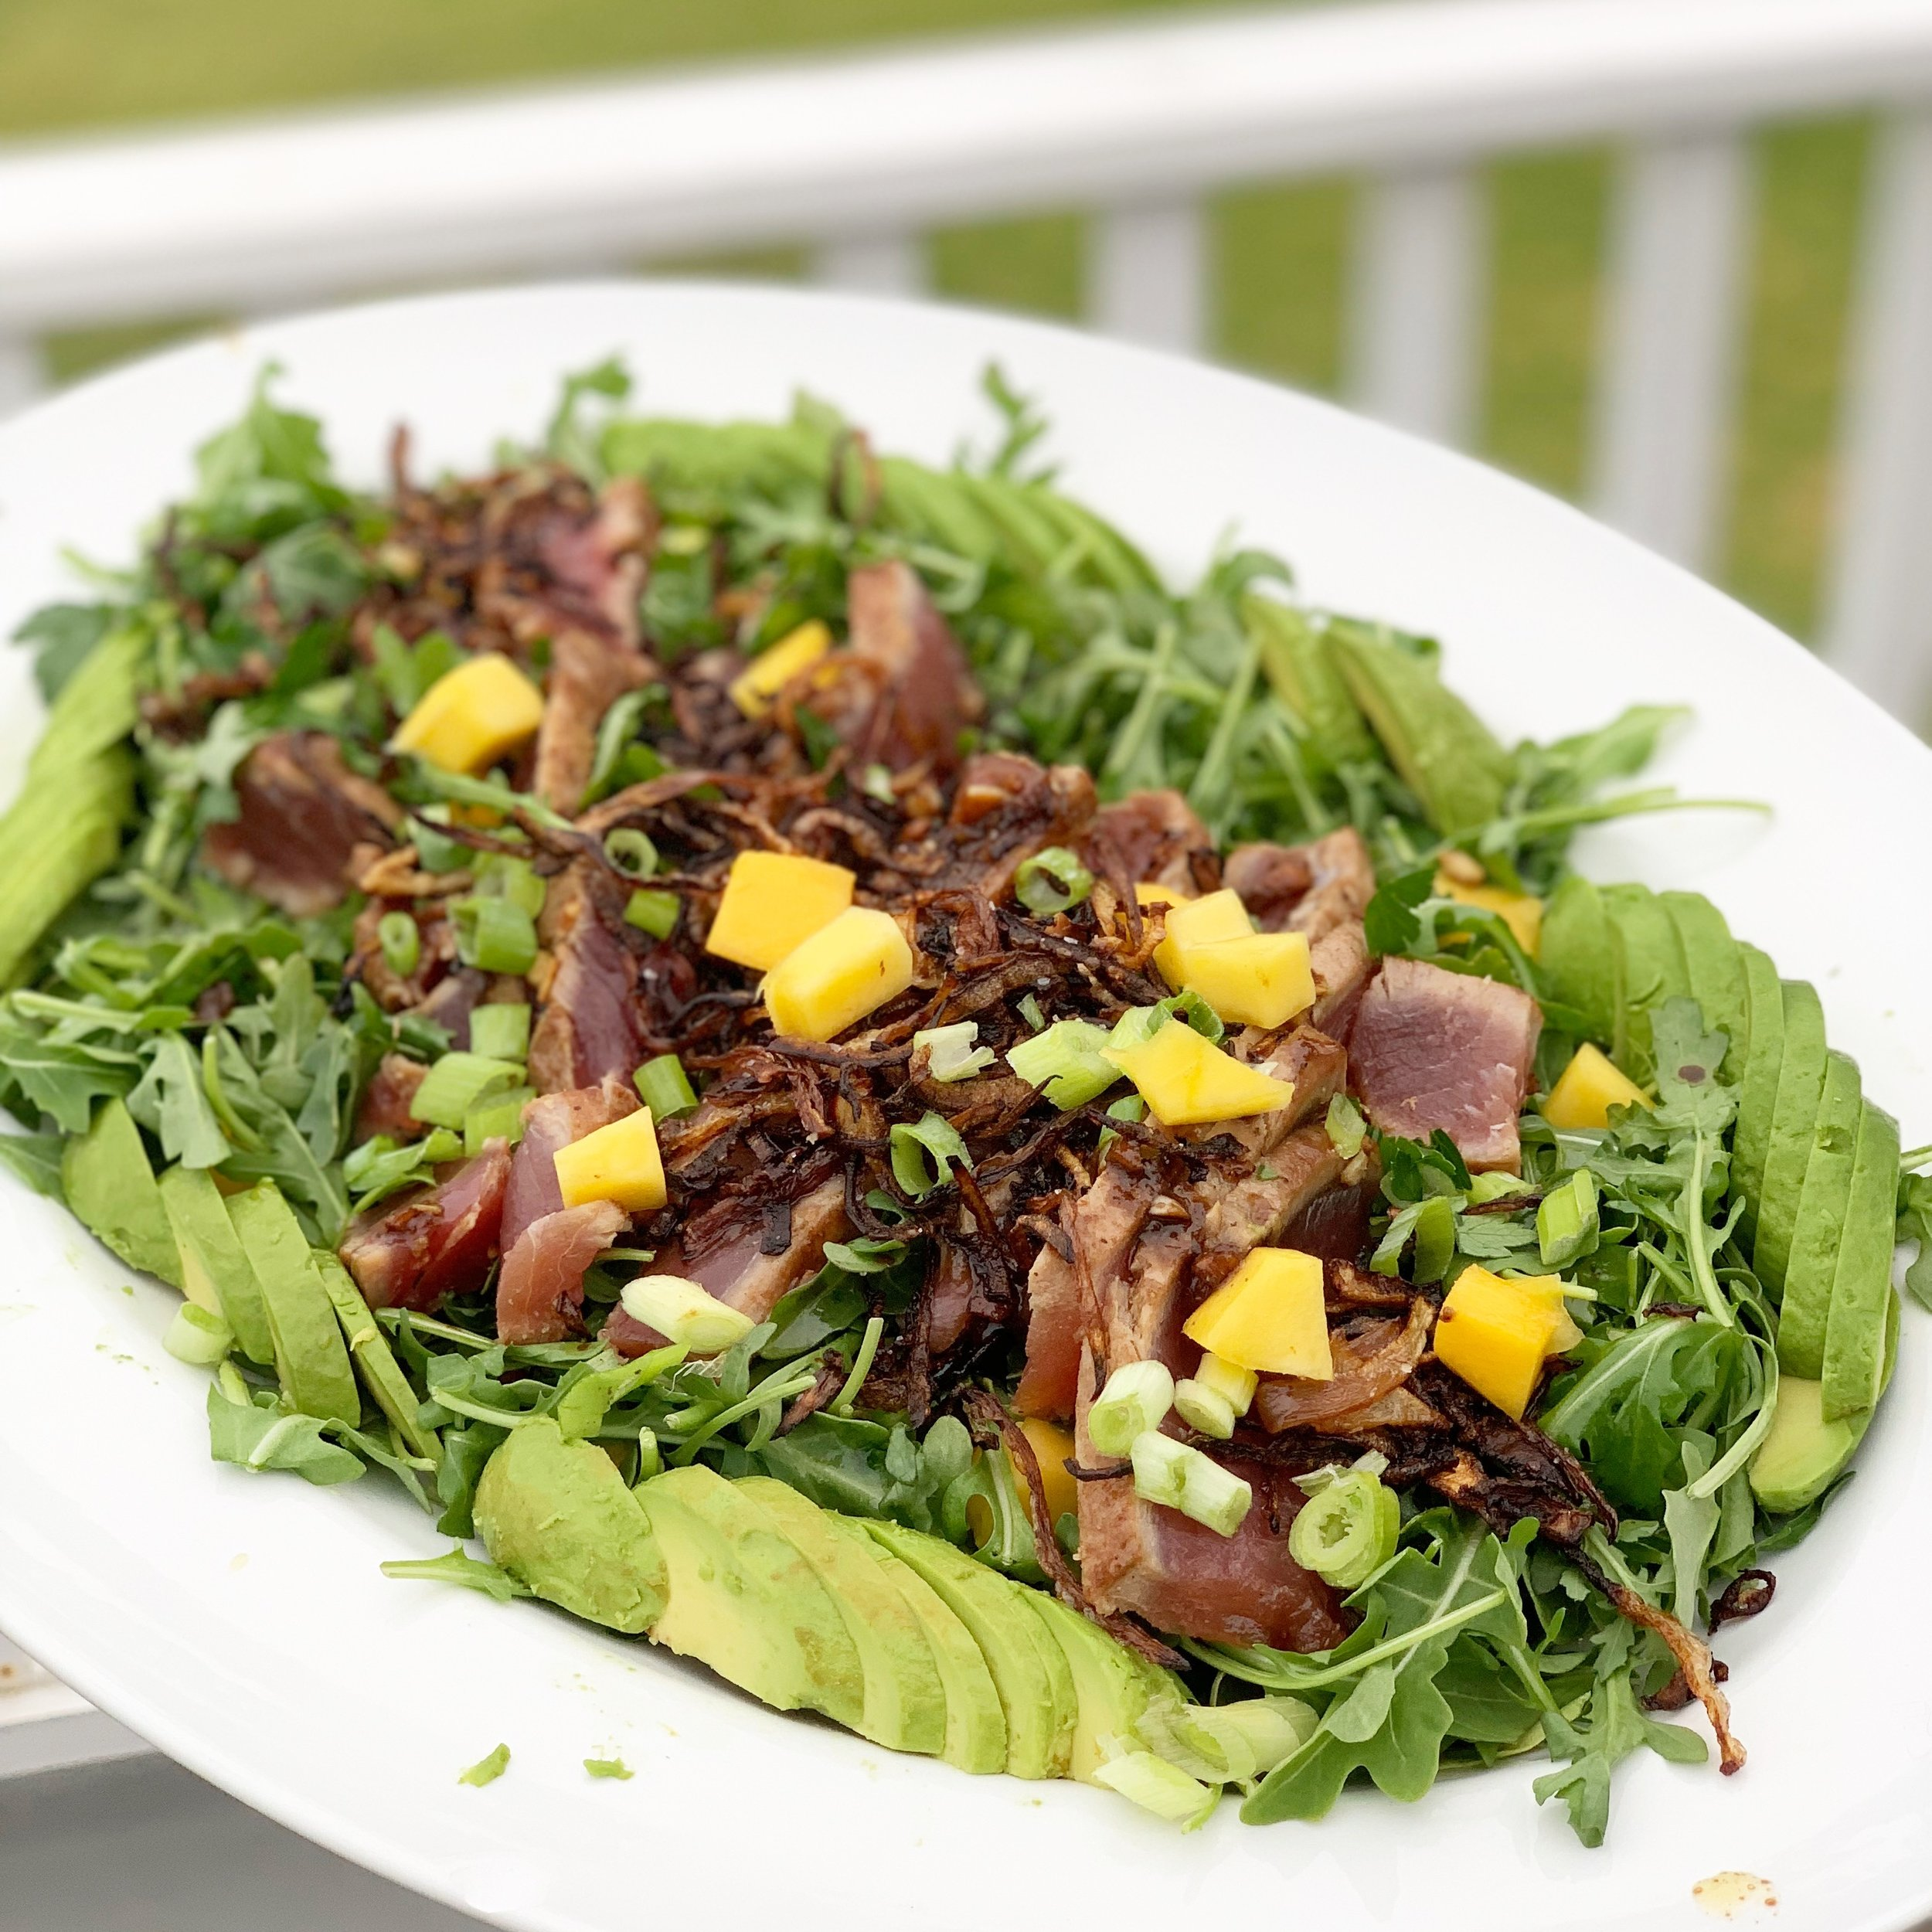 Seared Ahi with arugula, crispy onions, mango, avocado, and scallions with pan drippings for dressing